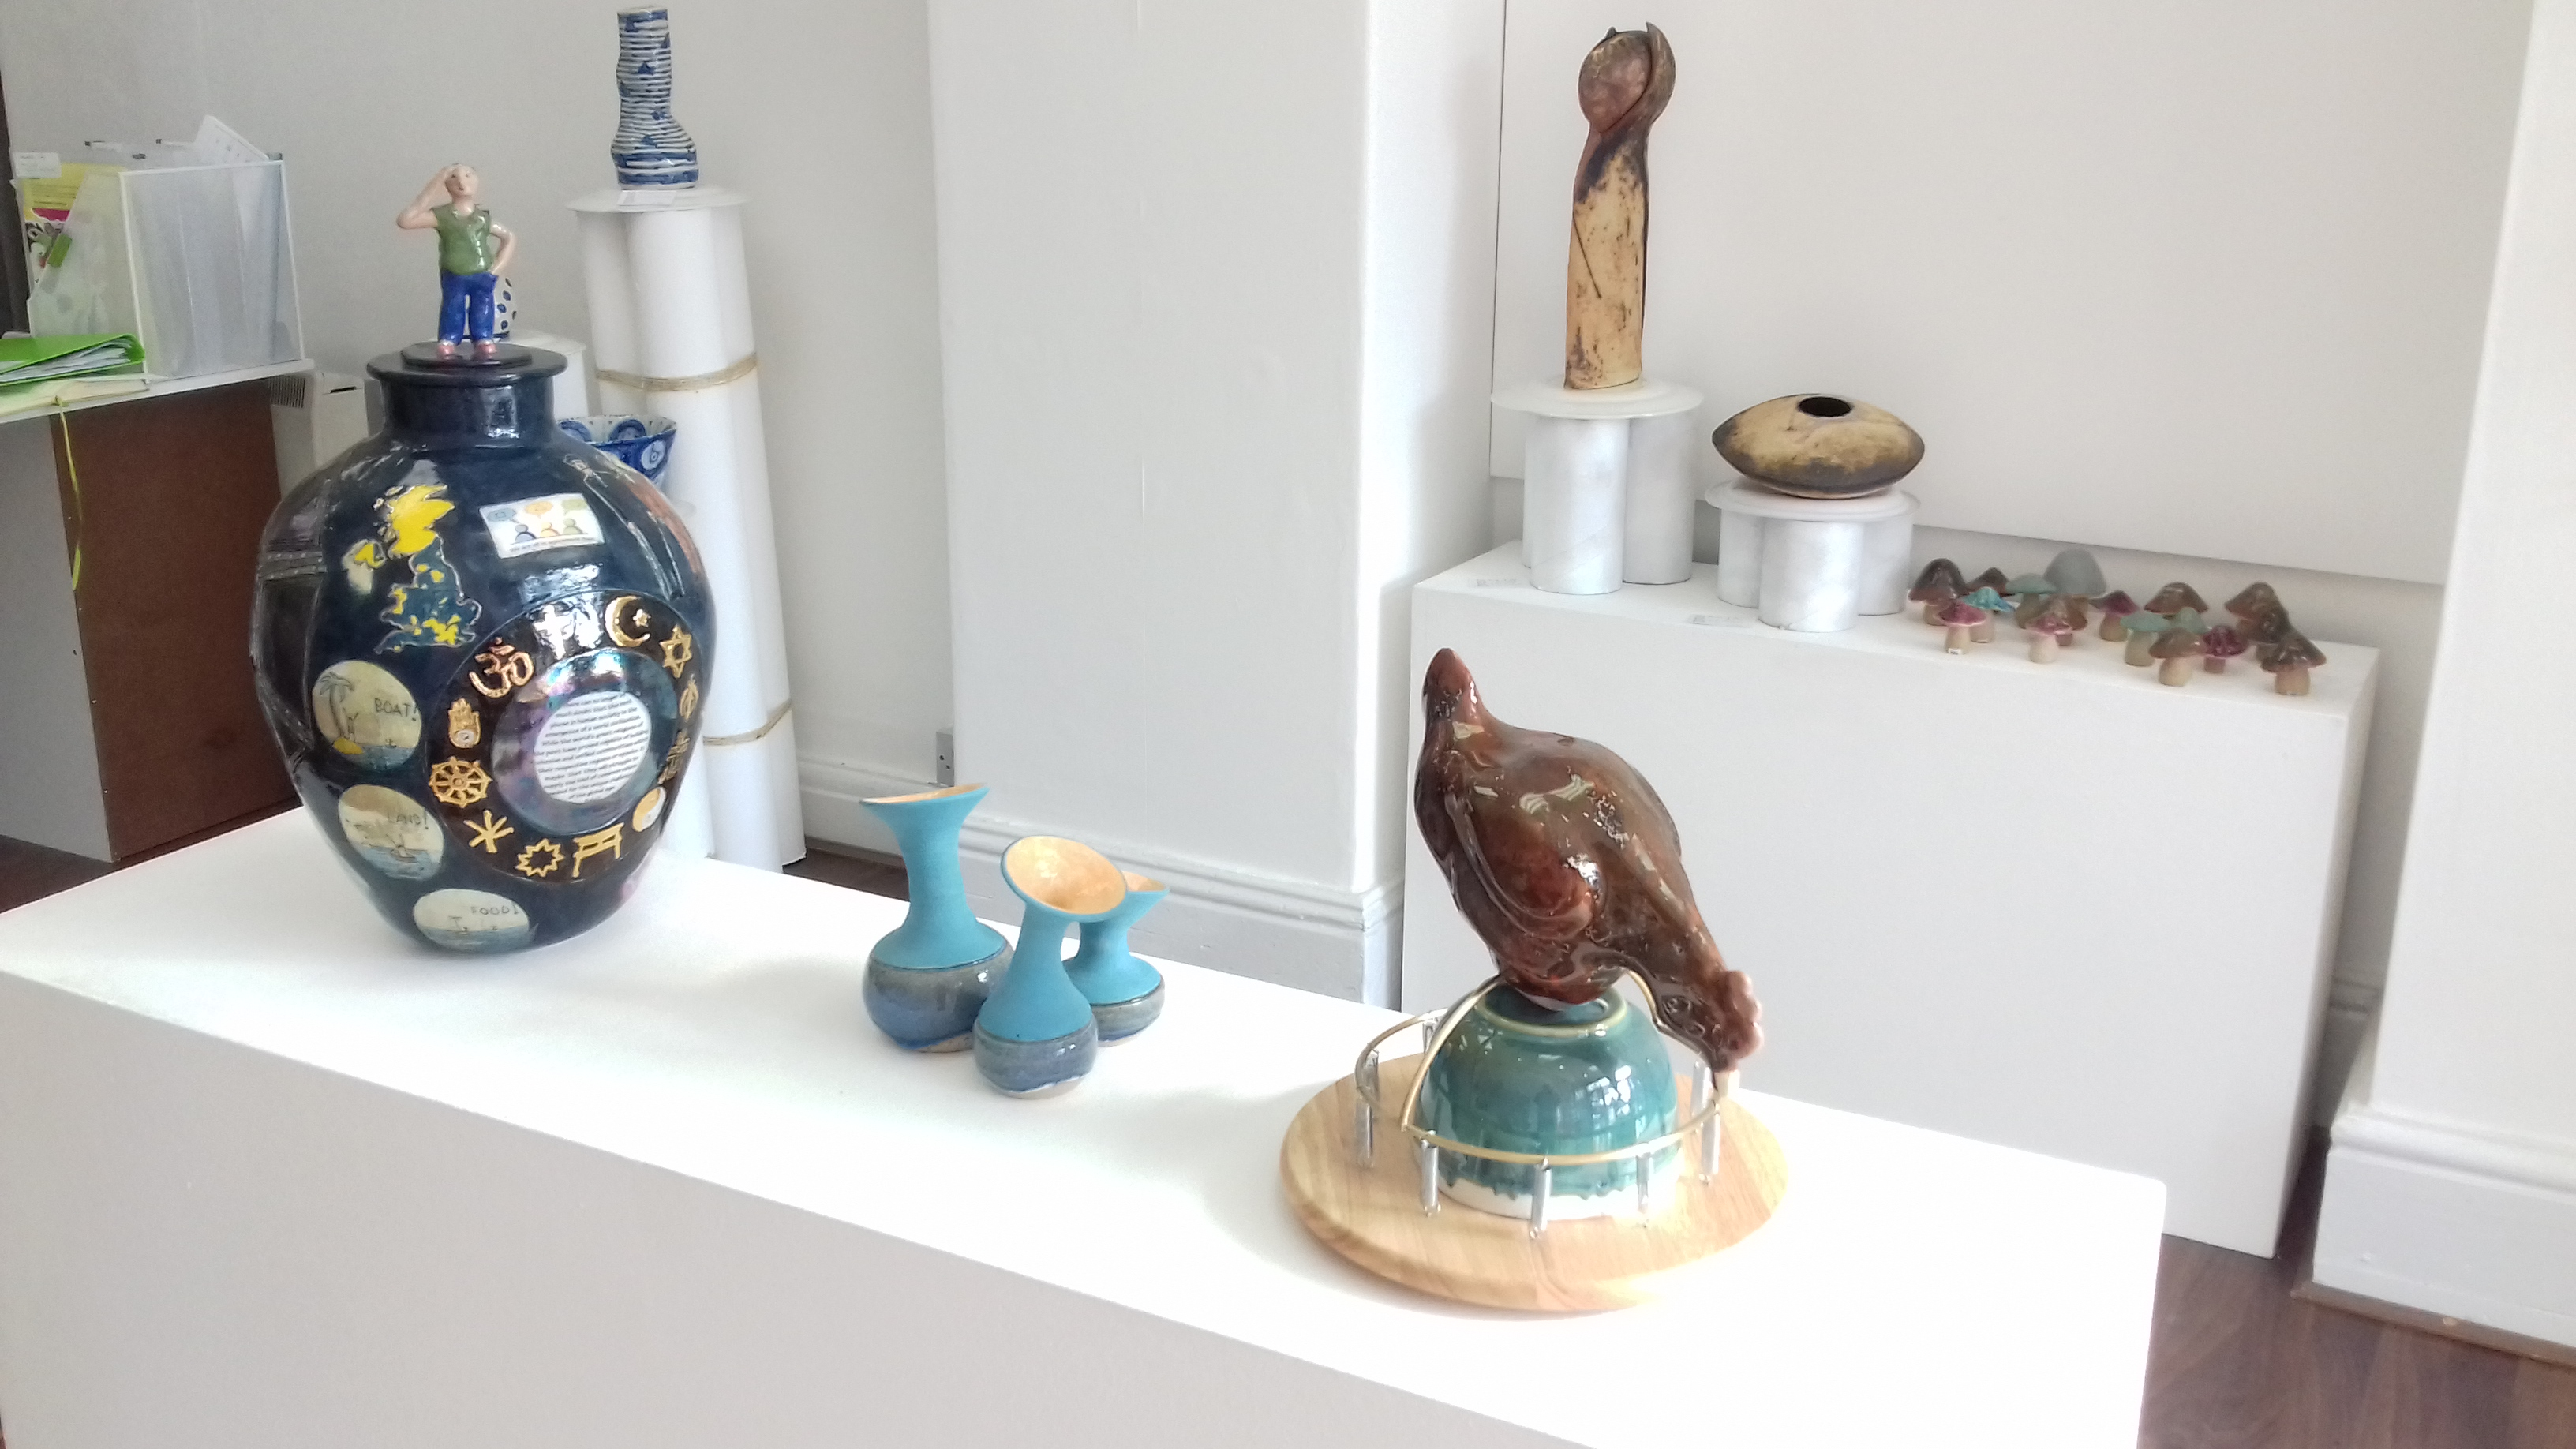 In an exhibition - Mary Morgan big pot and Simon Wolf small blue and Spring Chicken